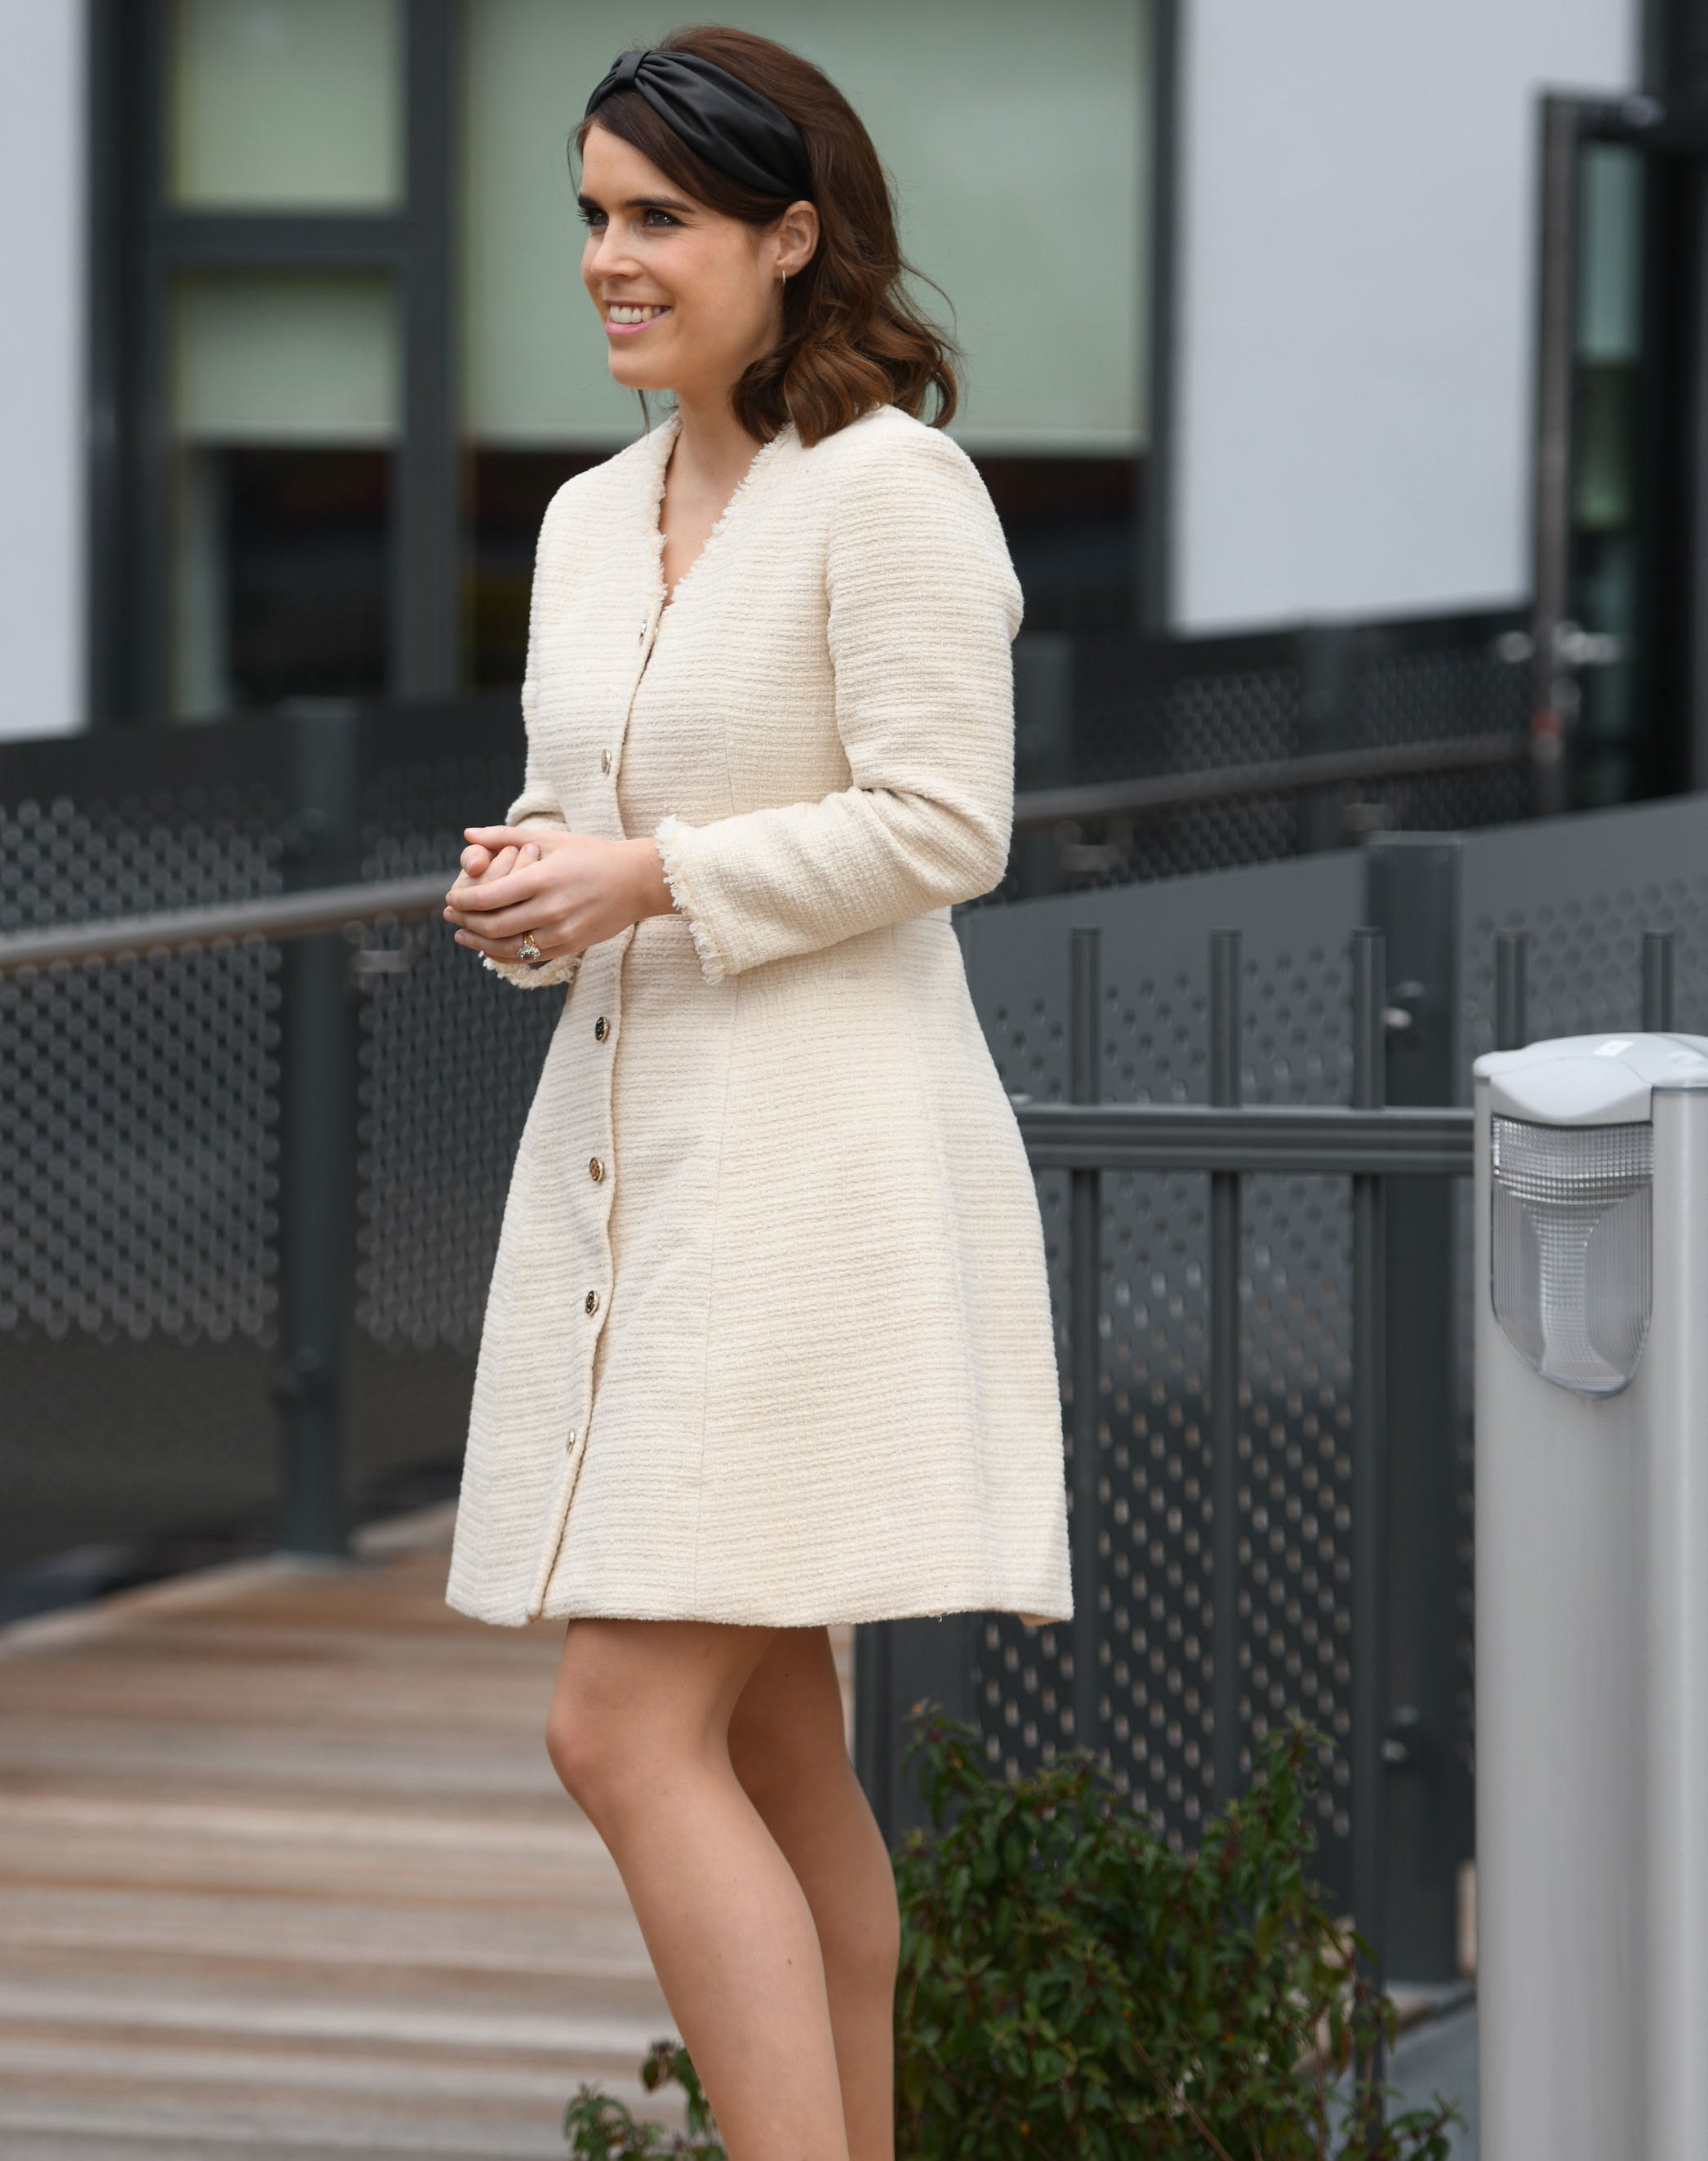 Princess Eugenie Totally Channeled Blair Waldorf in This Fresh & Fun Tweed Dress (Which Just Happens to Be On Sale)